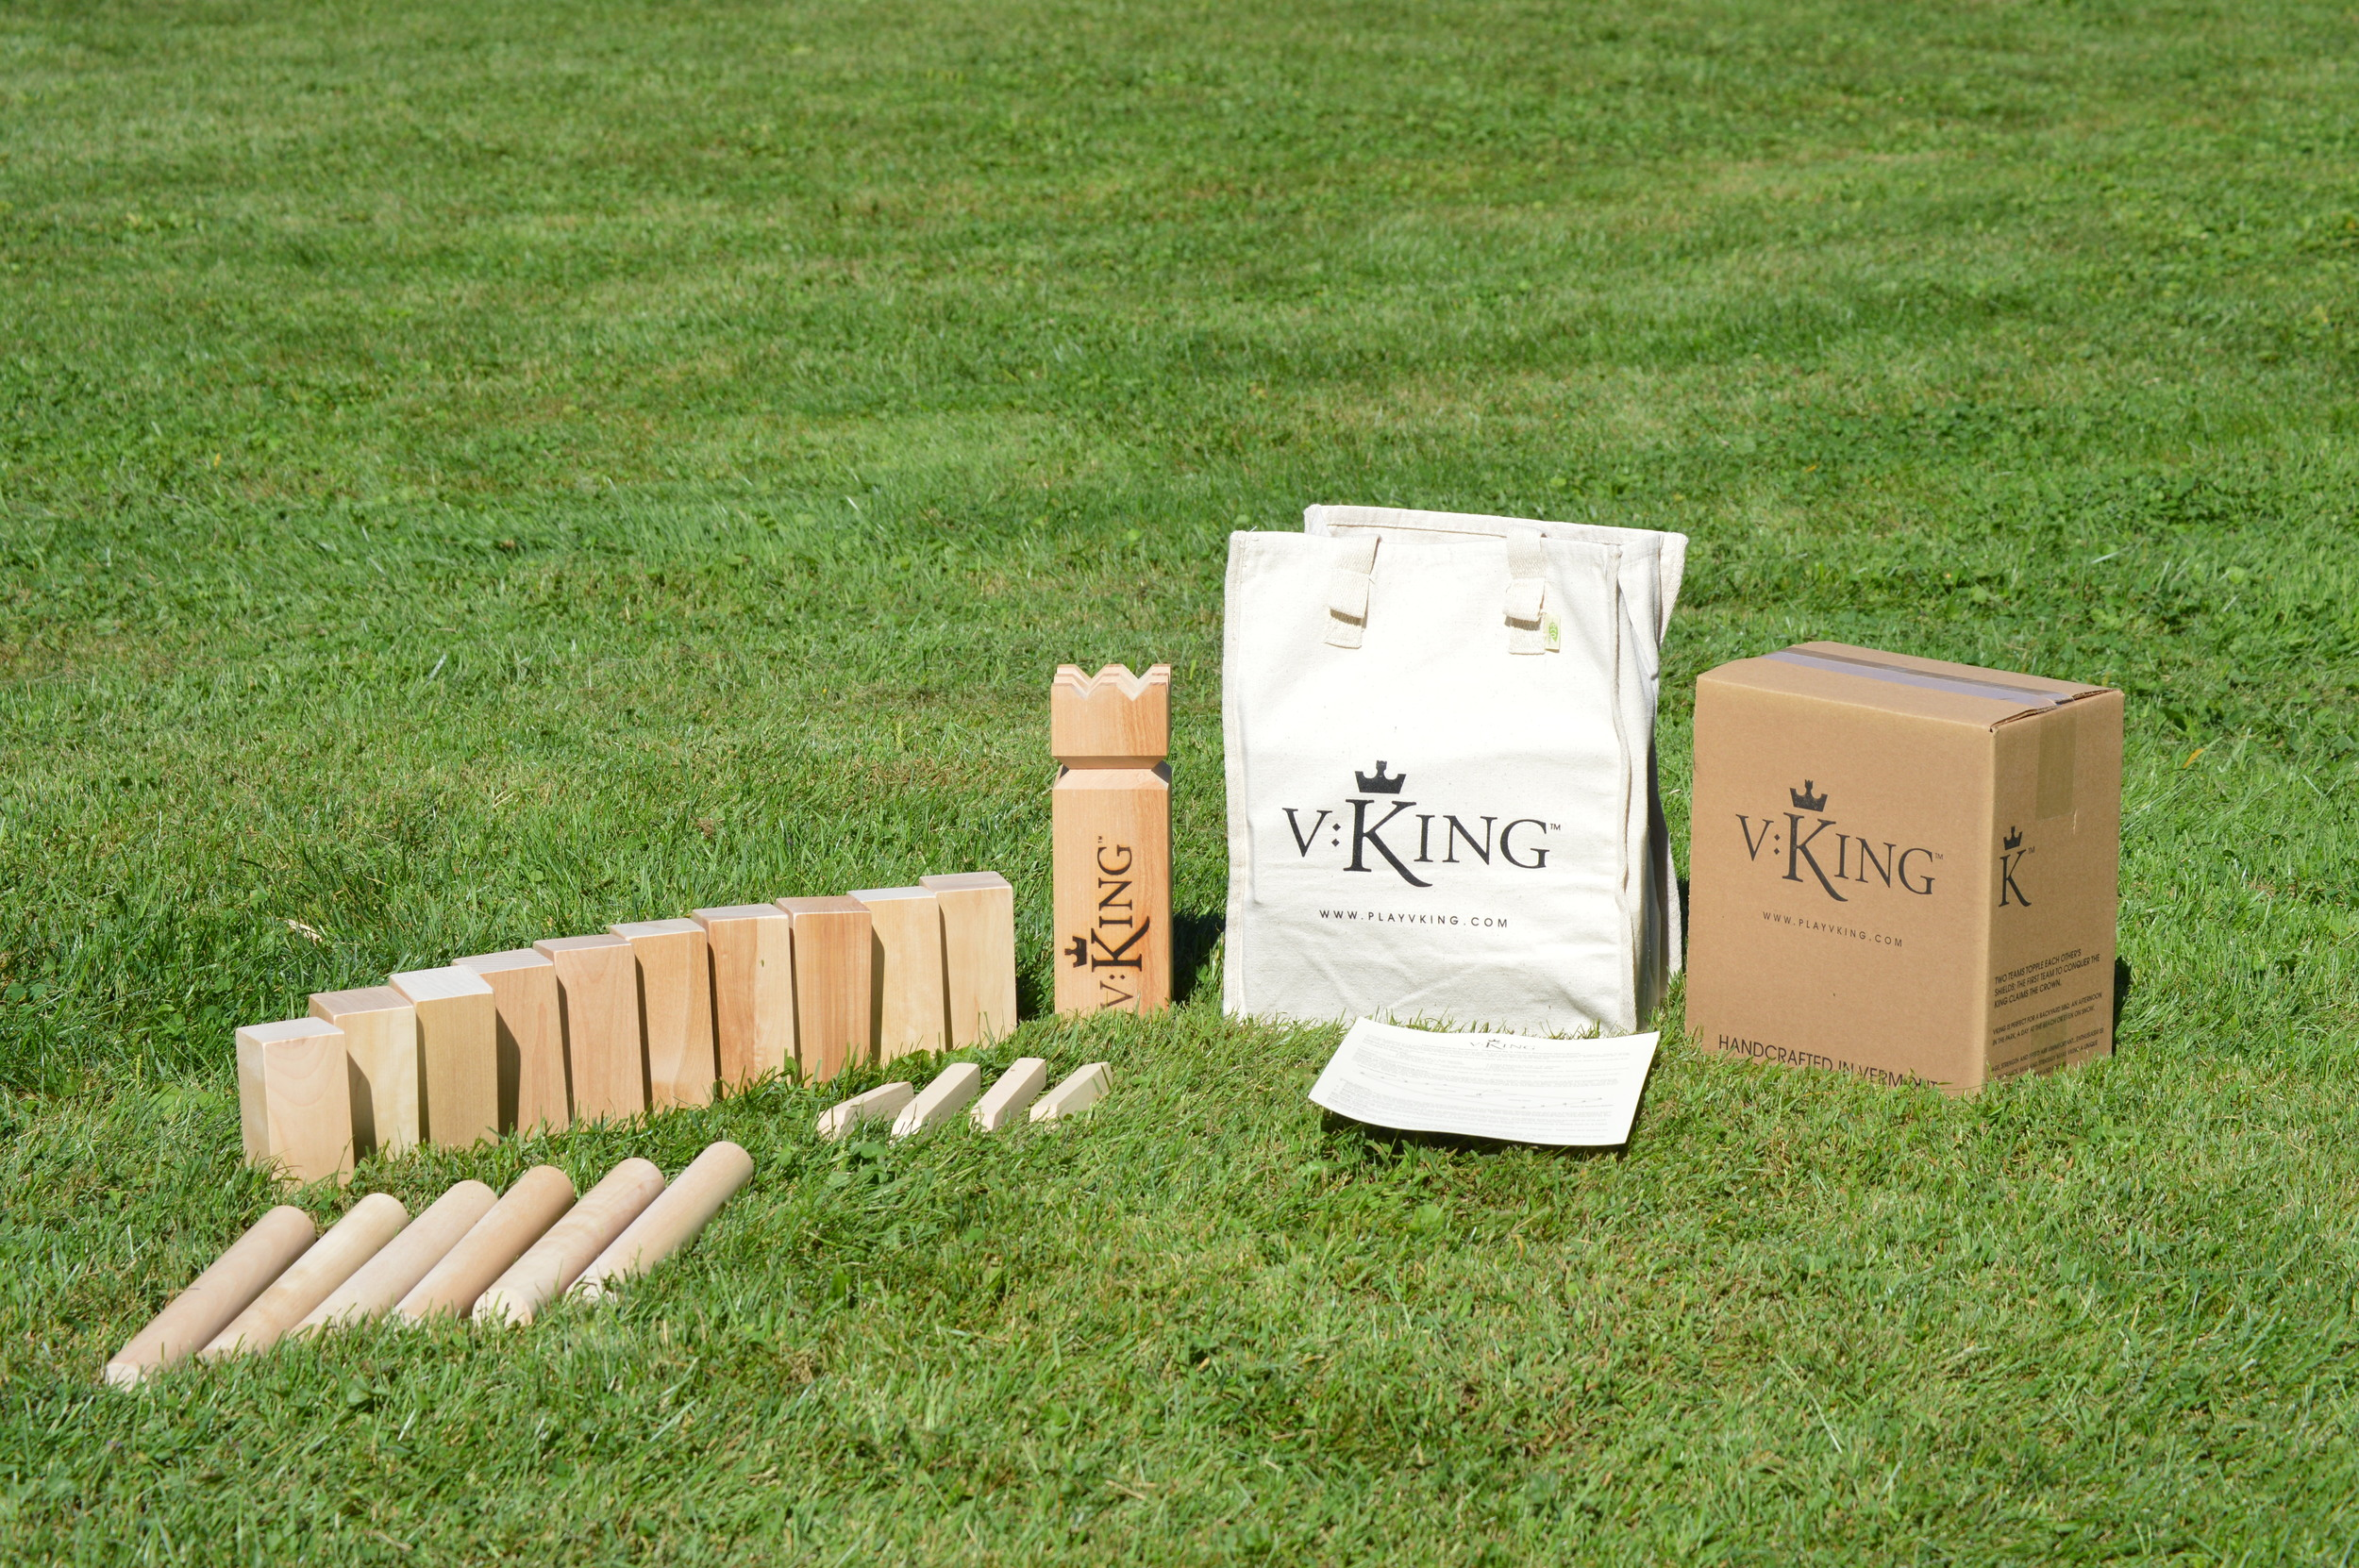 V:King Set handcrafted in Vermont includes:  10 Shields  6 Battle Axes  1 King  4 Field Markers  1 Cotton Canvas Storage Bag  1 Rule Sheet